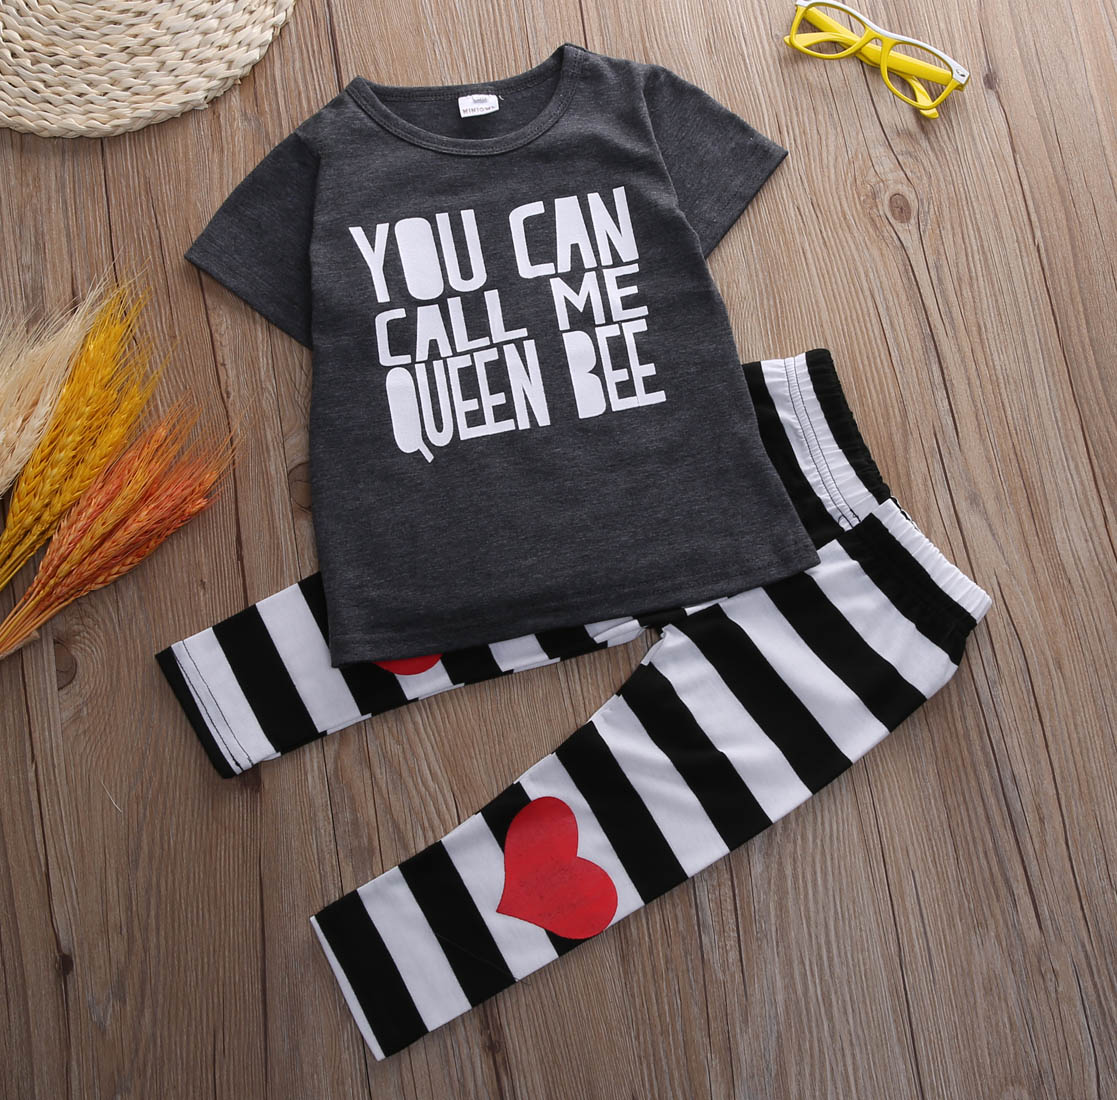 Baby boy Girl clothes set Toddler Kids Baby Girls Print Outfit Clothes T-shirt Tops+Long Strip Pants 2pcs children clothes set toddler kids baby girls clothing cotton t shirt tops short sleeve pants 2pcs outfit clothes set girl tracksuit